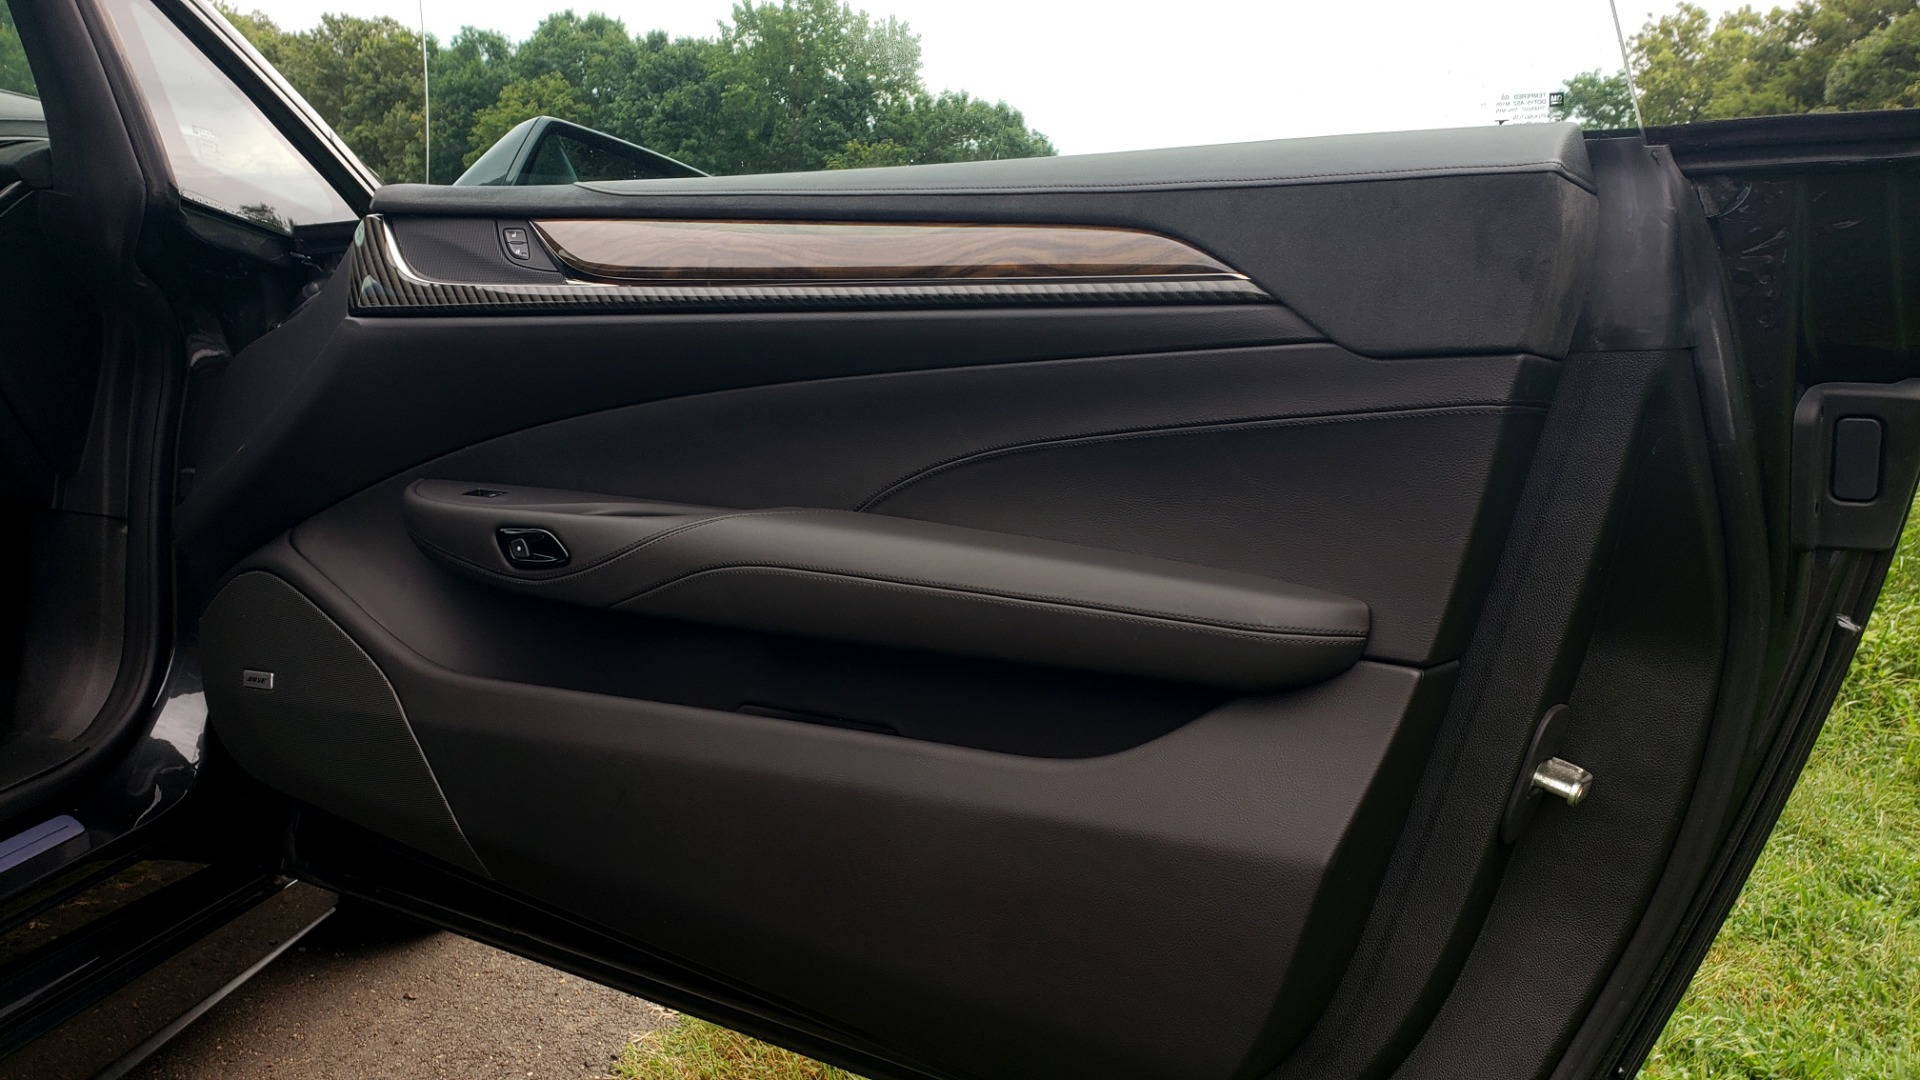 Used 2014 Cadillac ELR 2DR COUPE / HYBRID / NAV / BOSE / HEATED SEATS / REARVIEW for sale $34,000 at Formula Imports in Charlotte NC 28227 53